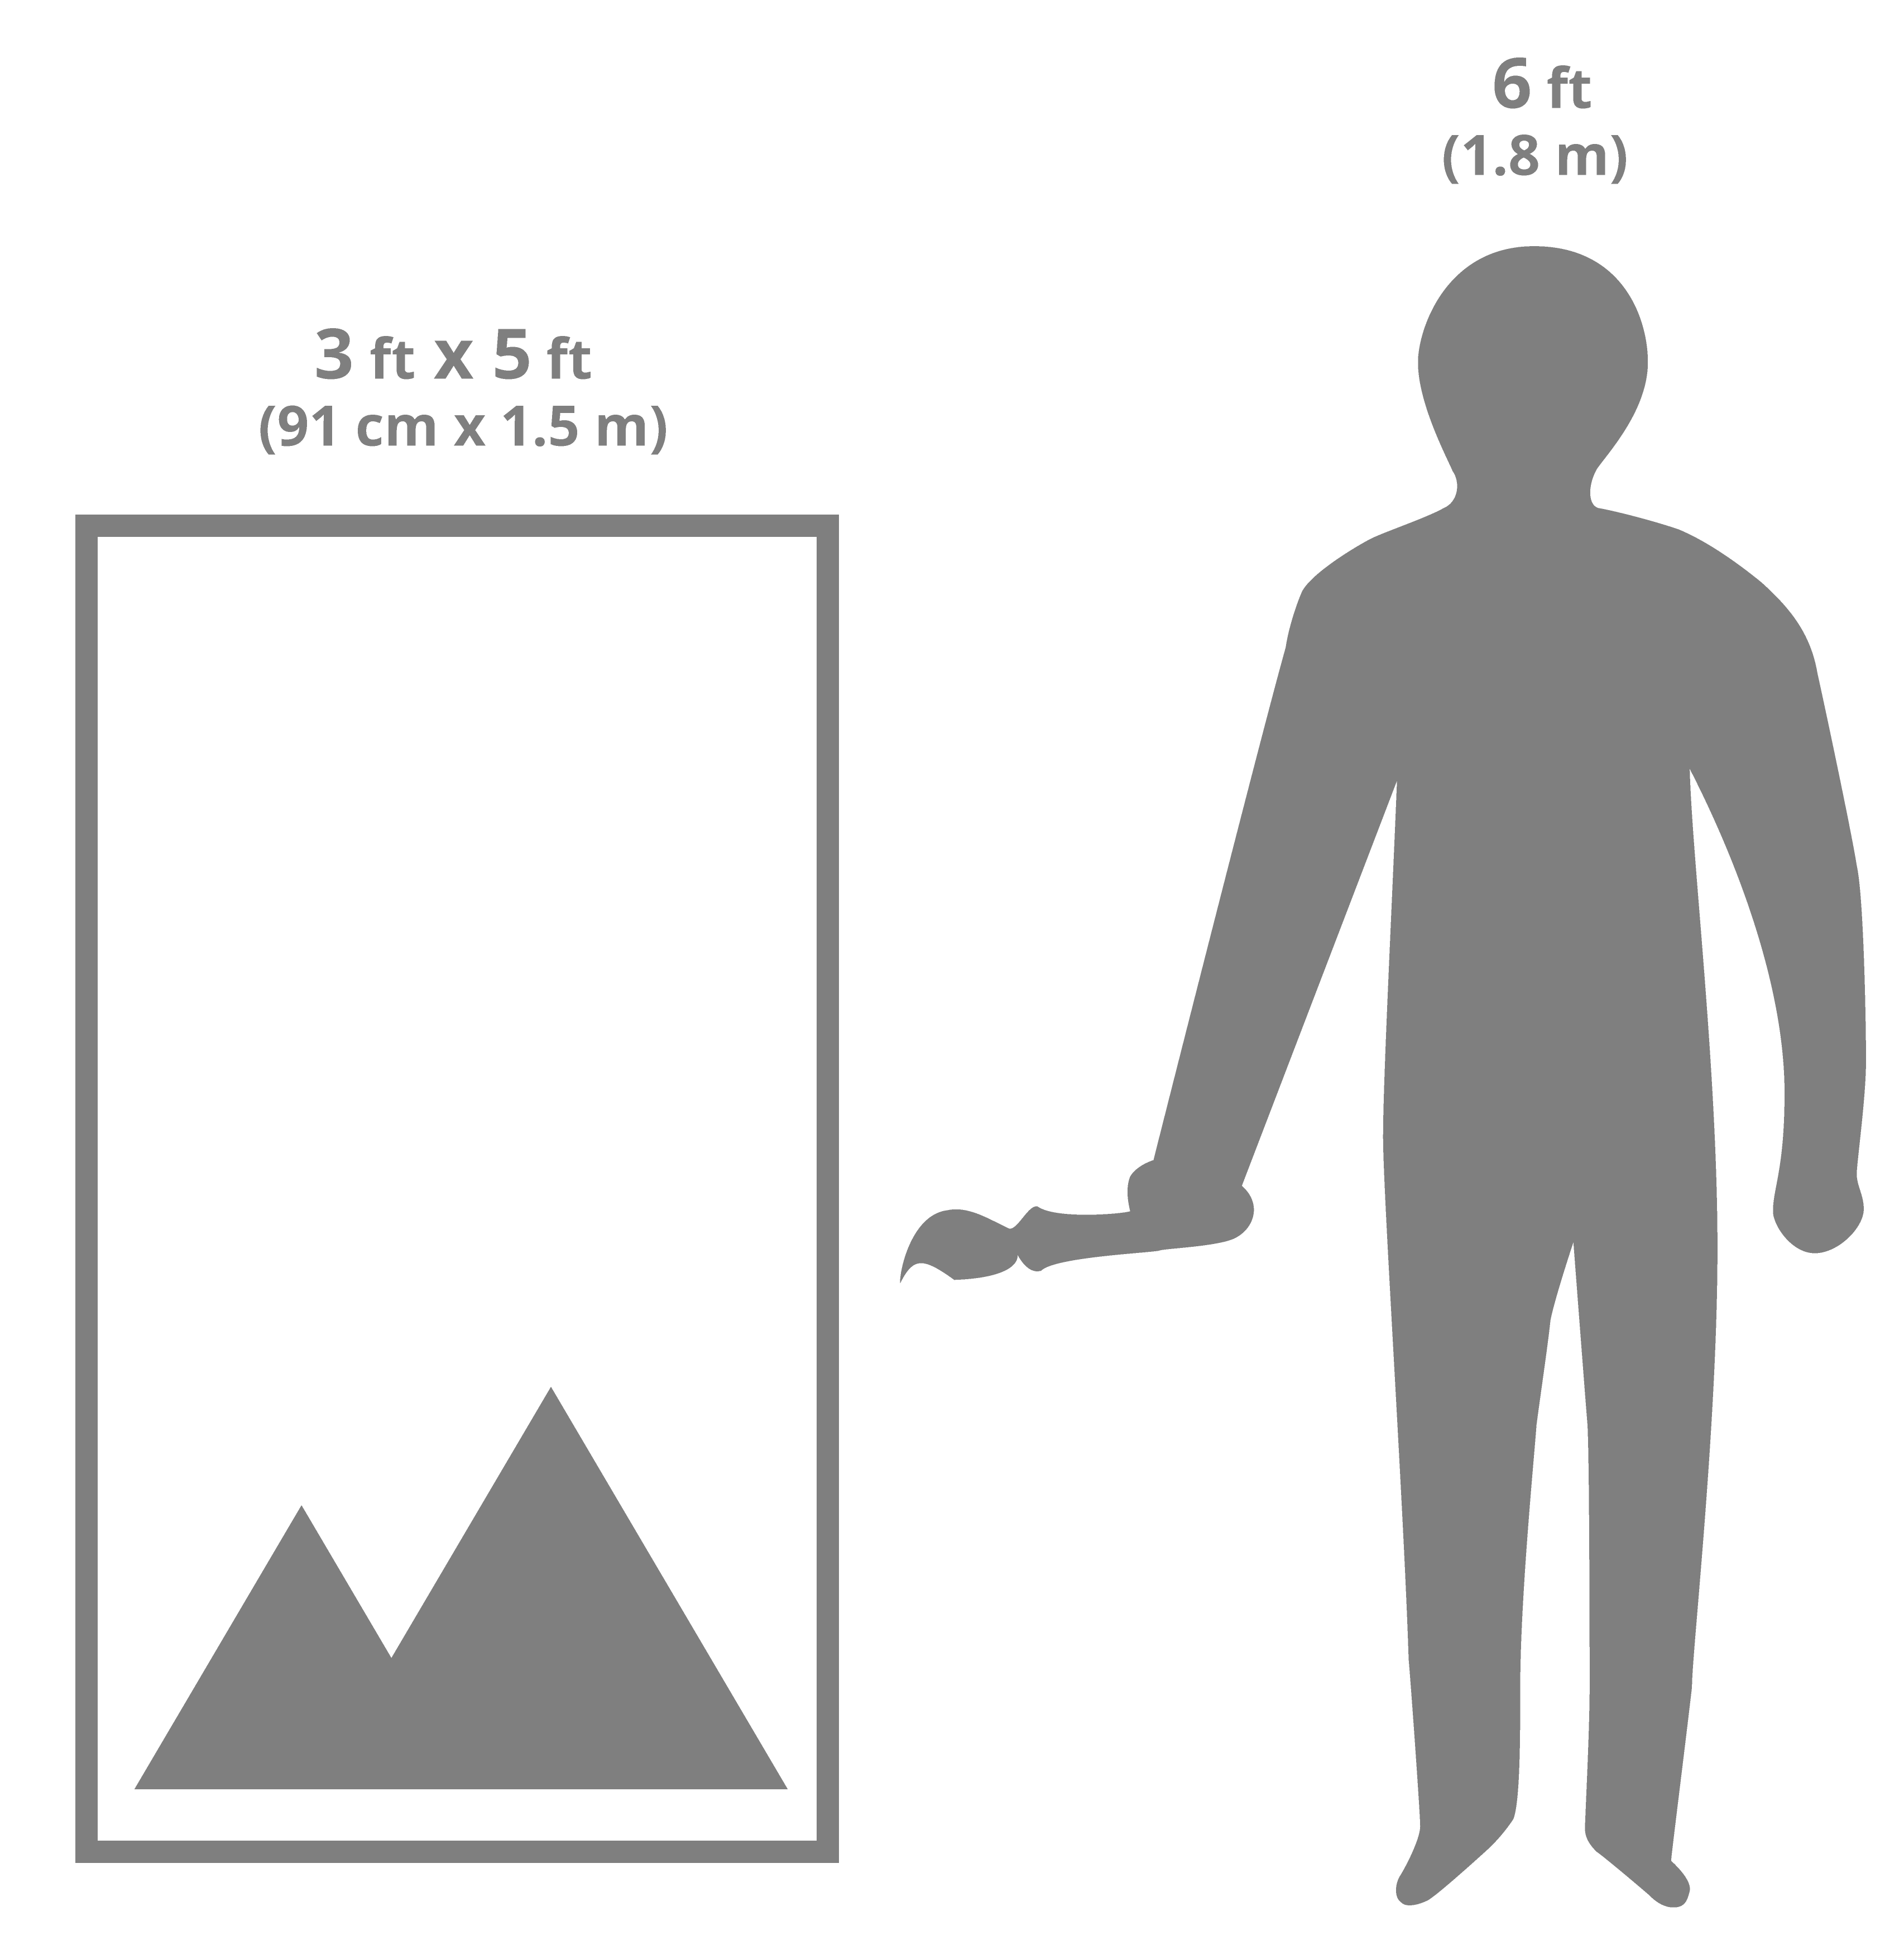 3x5 art sizing scale image